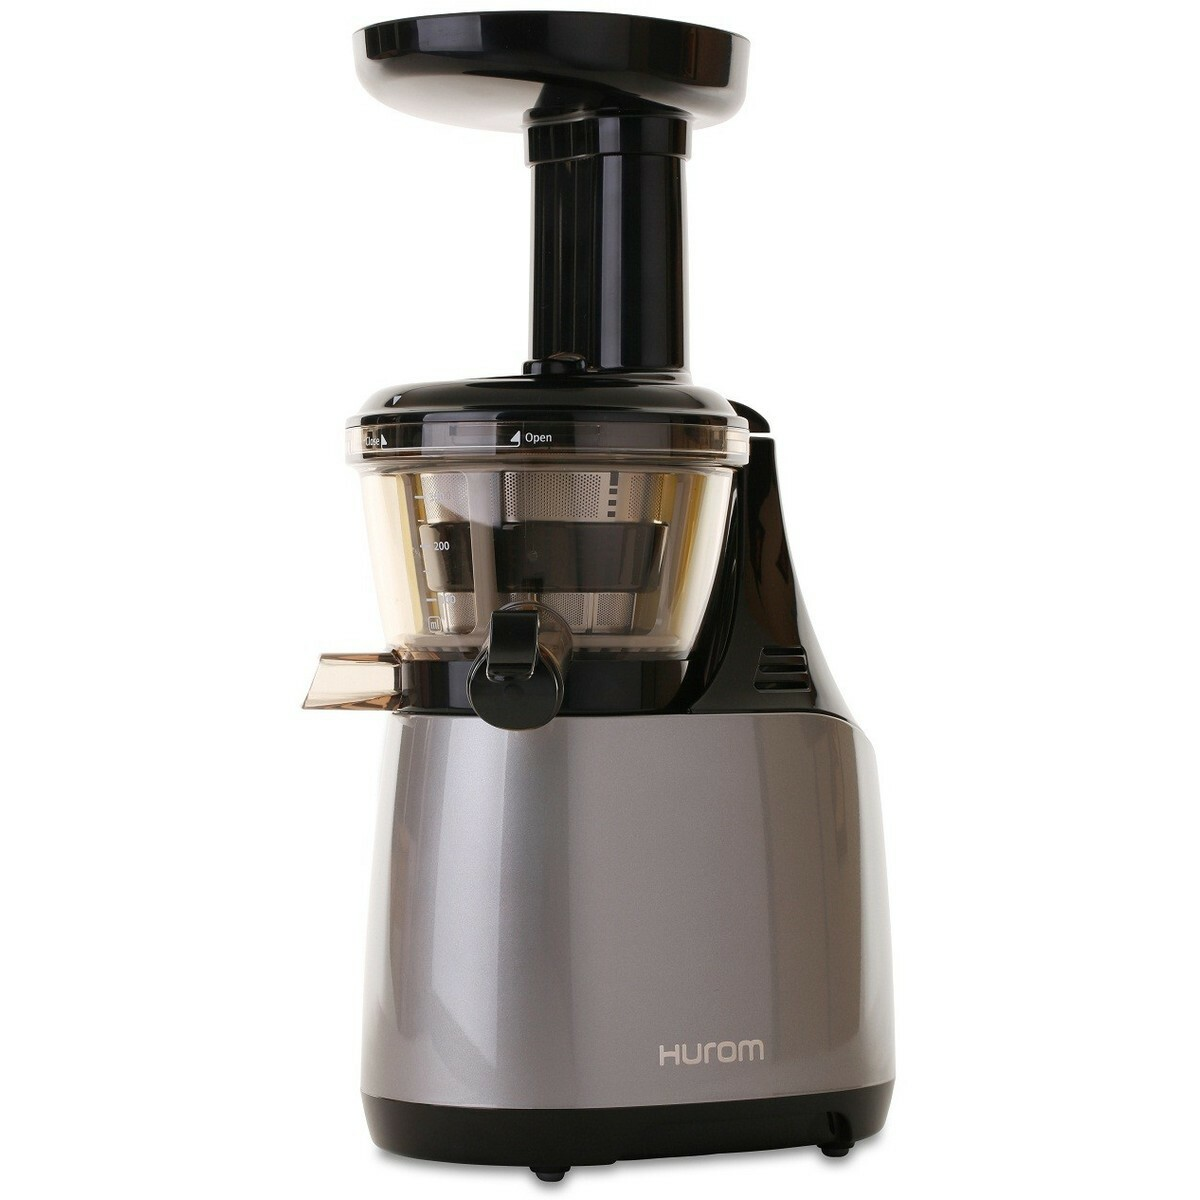 Hurom Slow Juicer Contact : Hurom Slow Juicer HU-500 HE Series - Juicers.ie Ireland s No 1 Juicers website